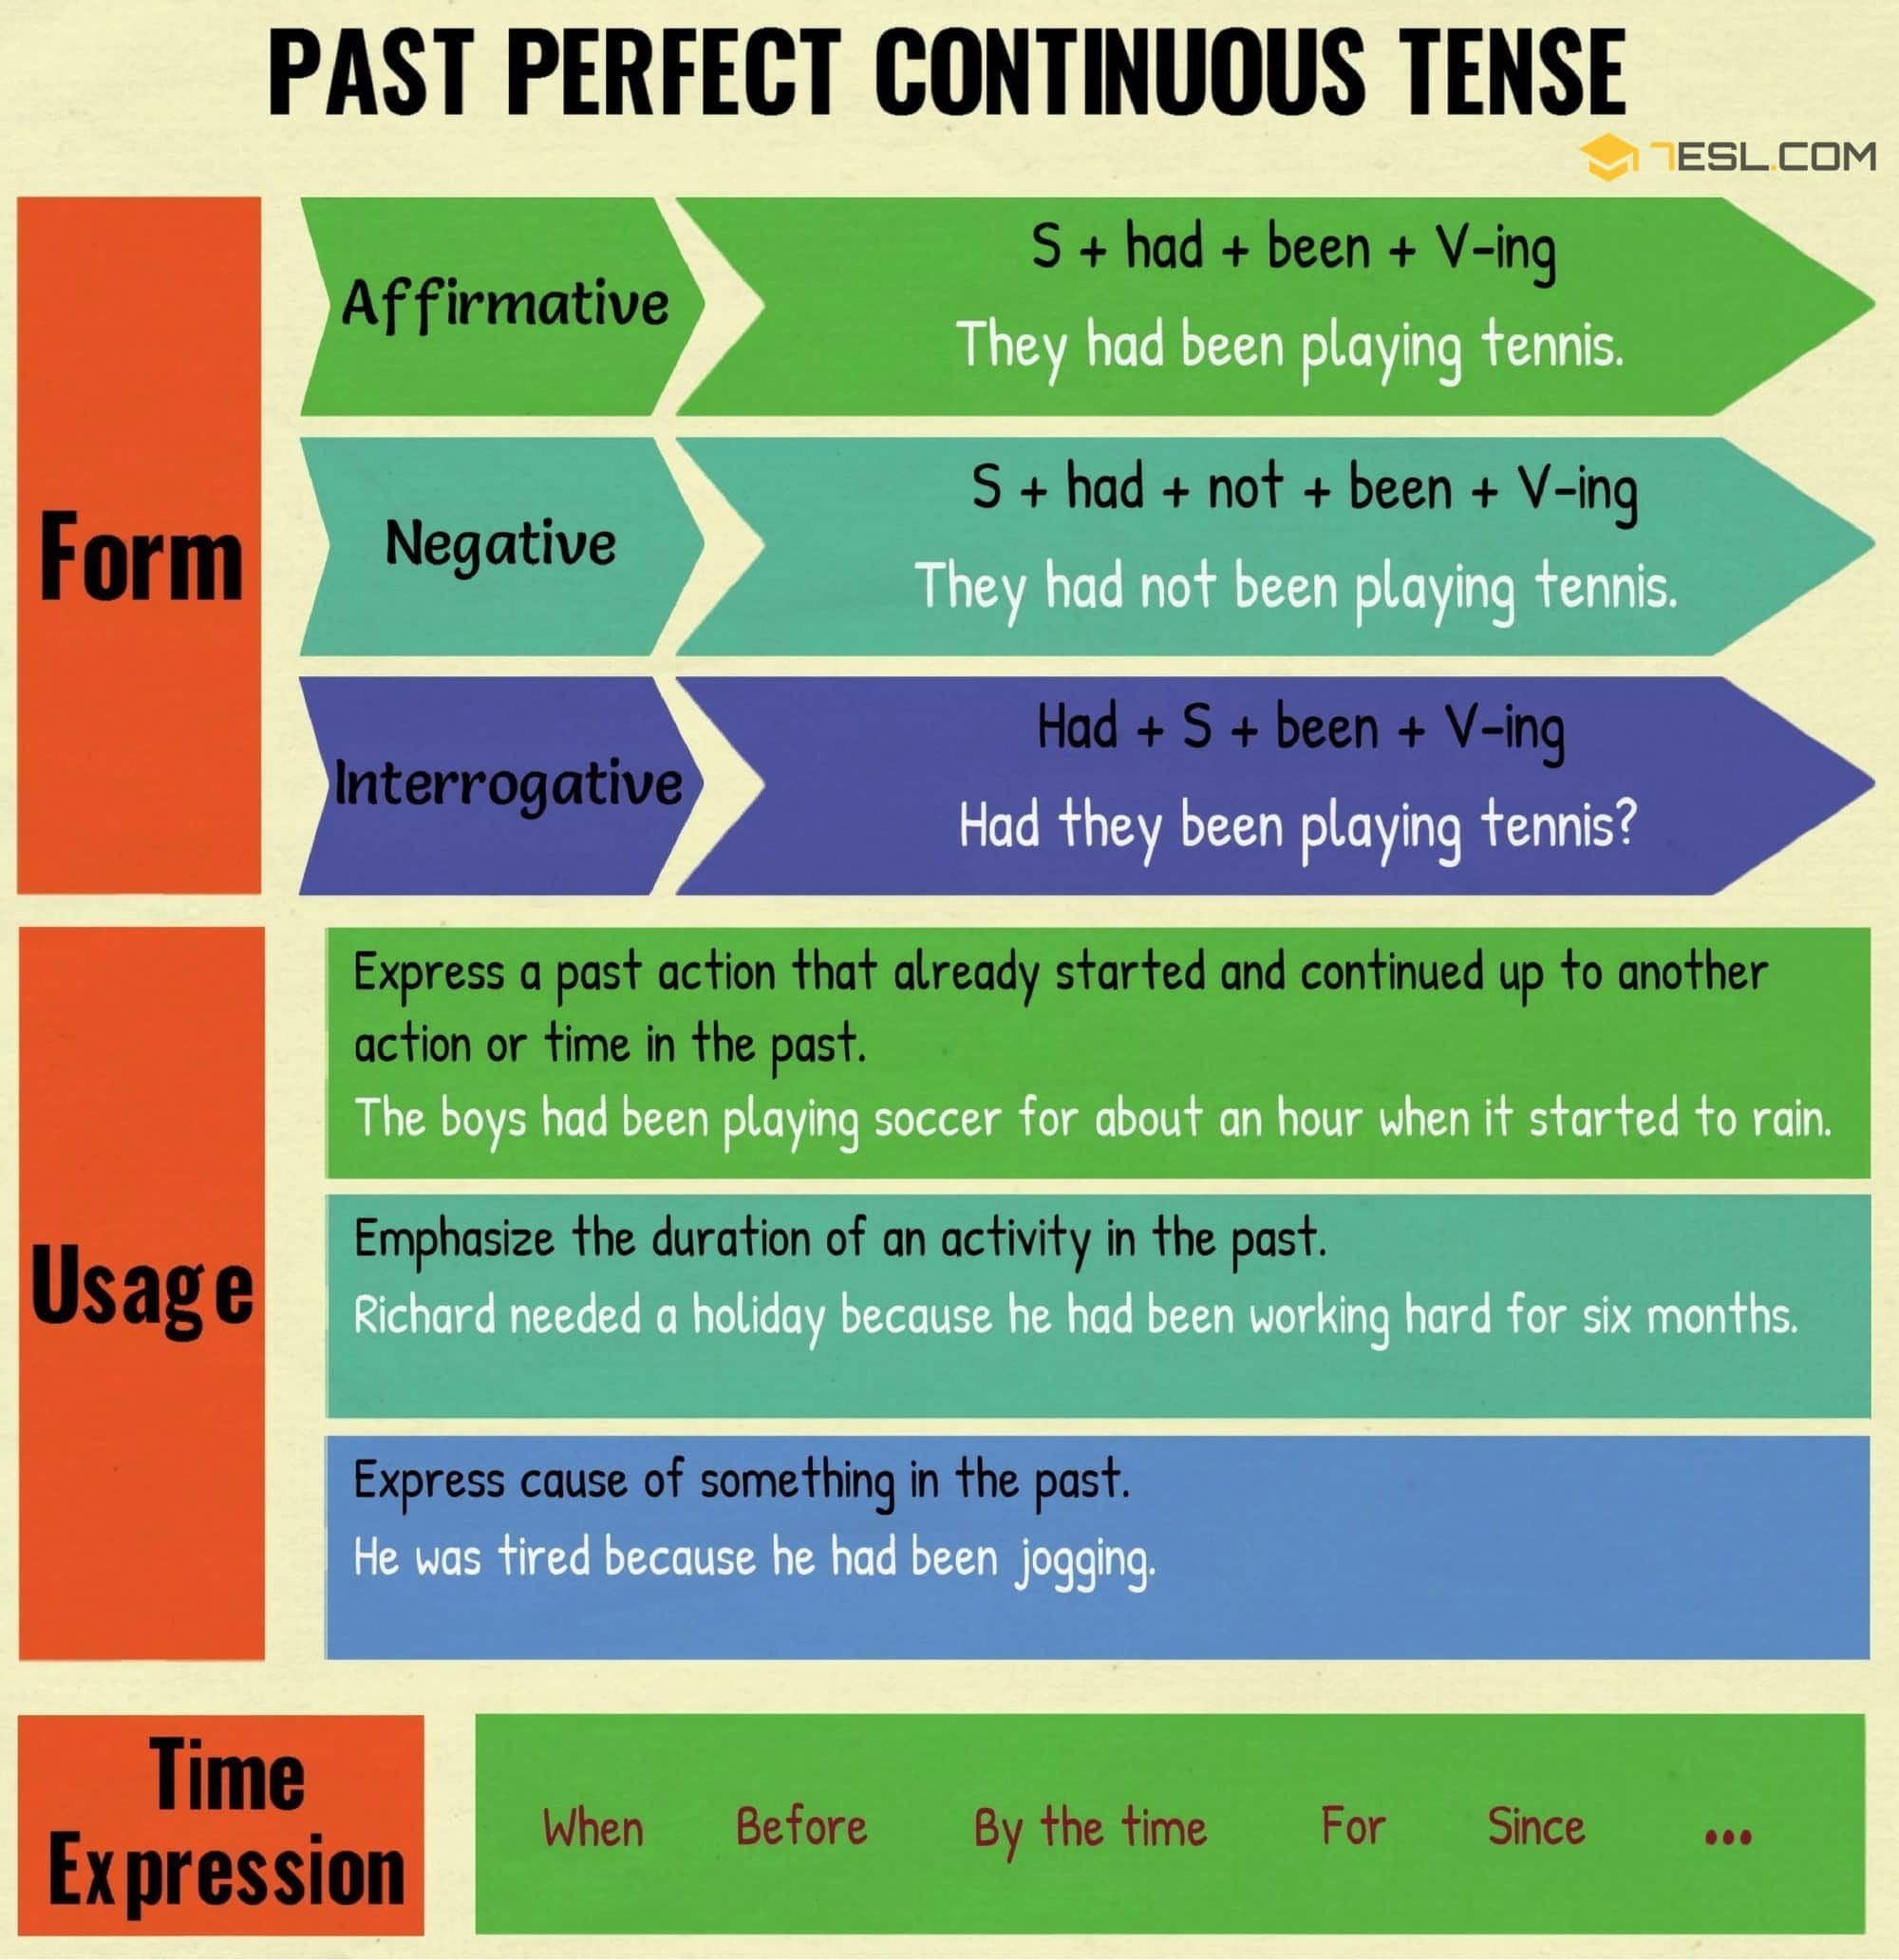 Past Perfect Continuous Tense | Rules and Examples 2